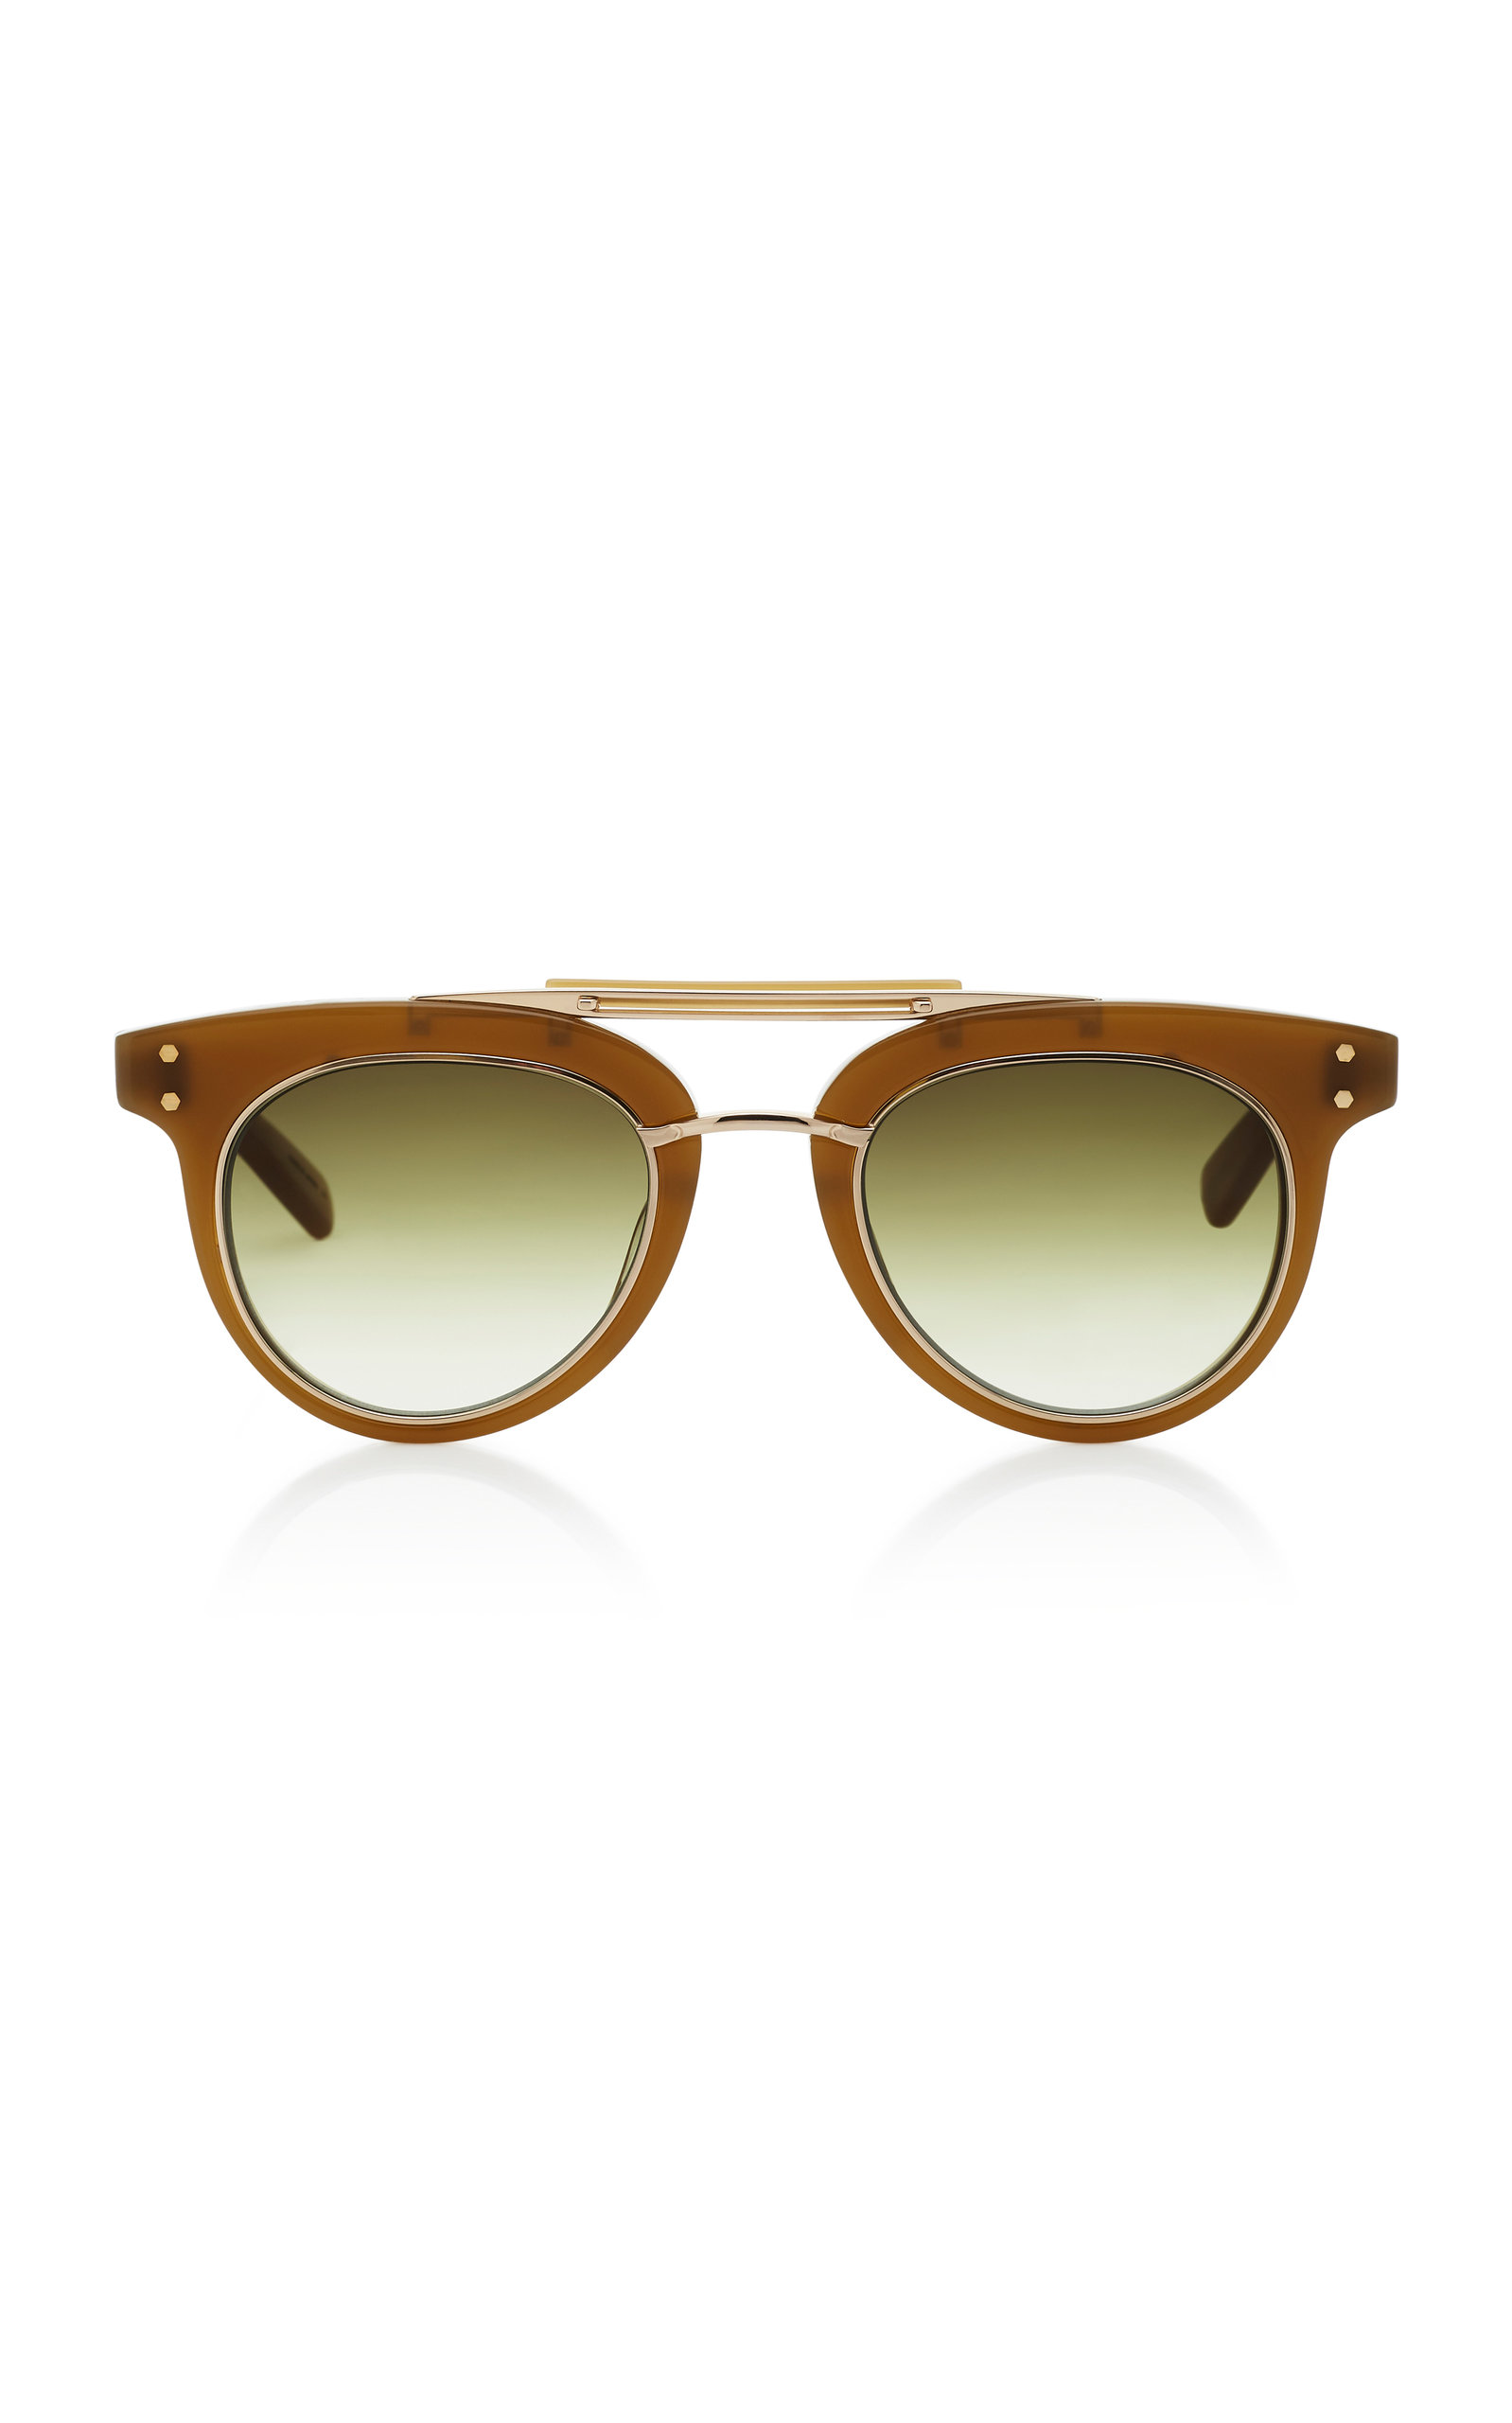 MR. LEIGHT Laurel Sl Aviator-Style Acetate And Metal Sunglasses in Green